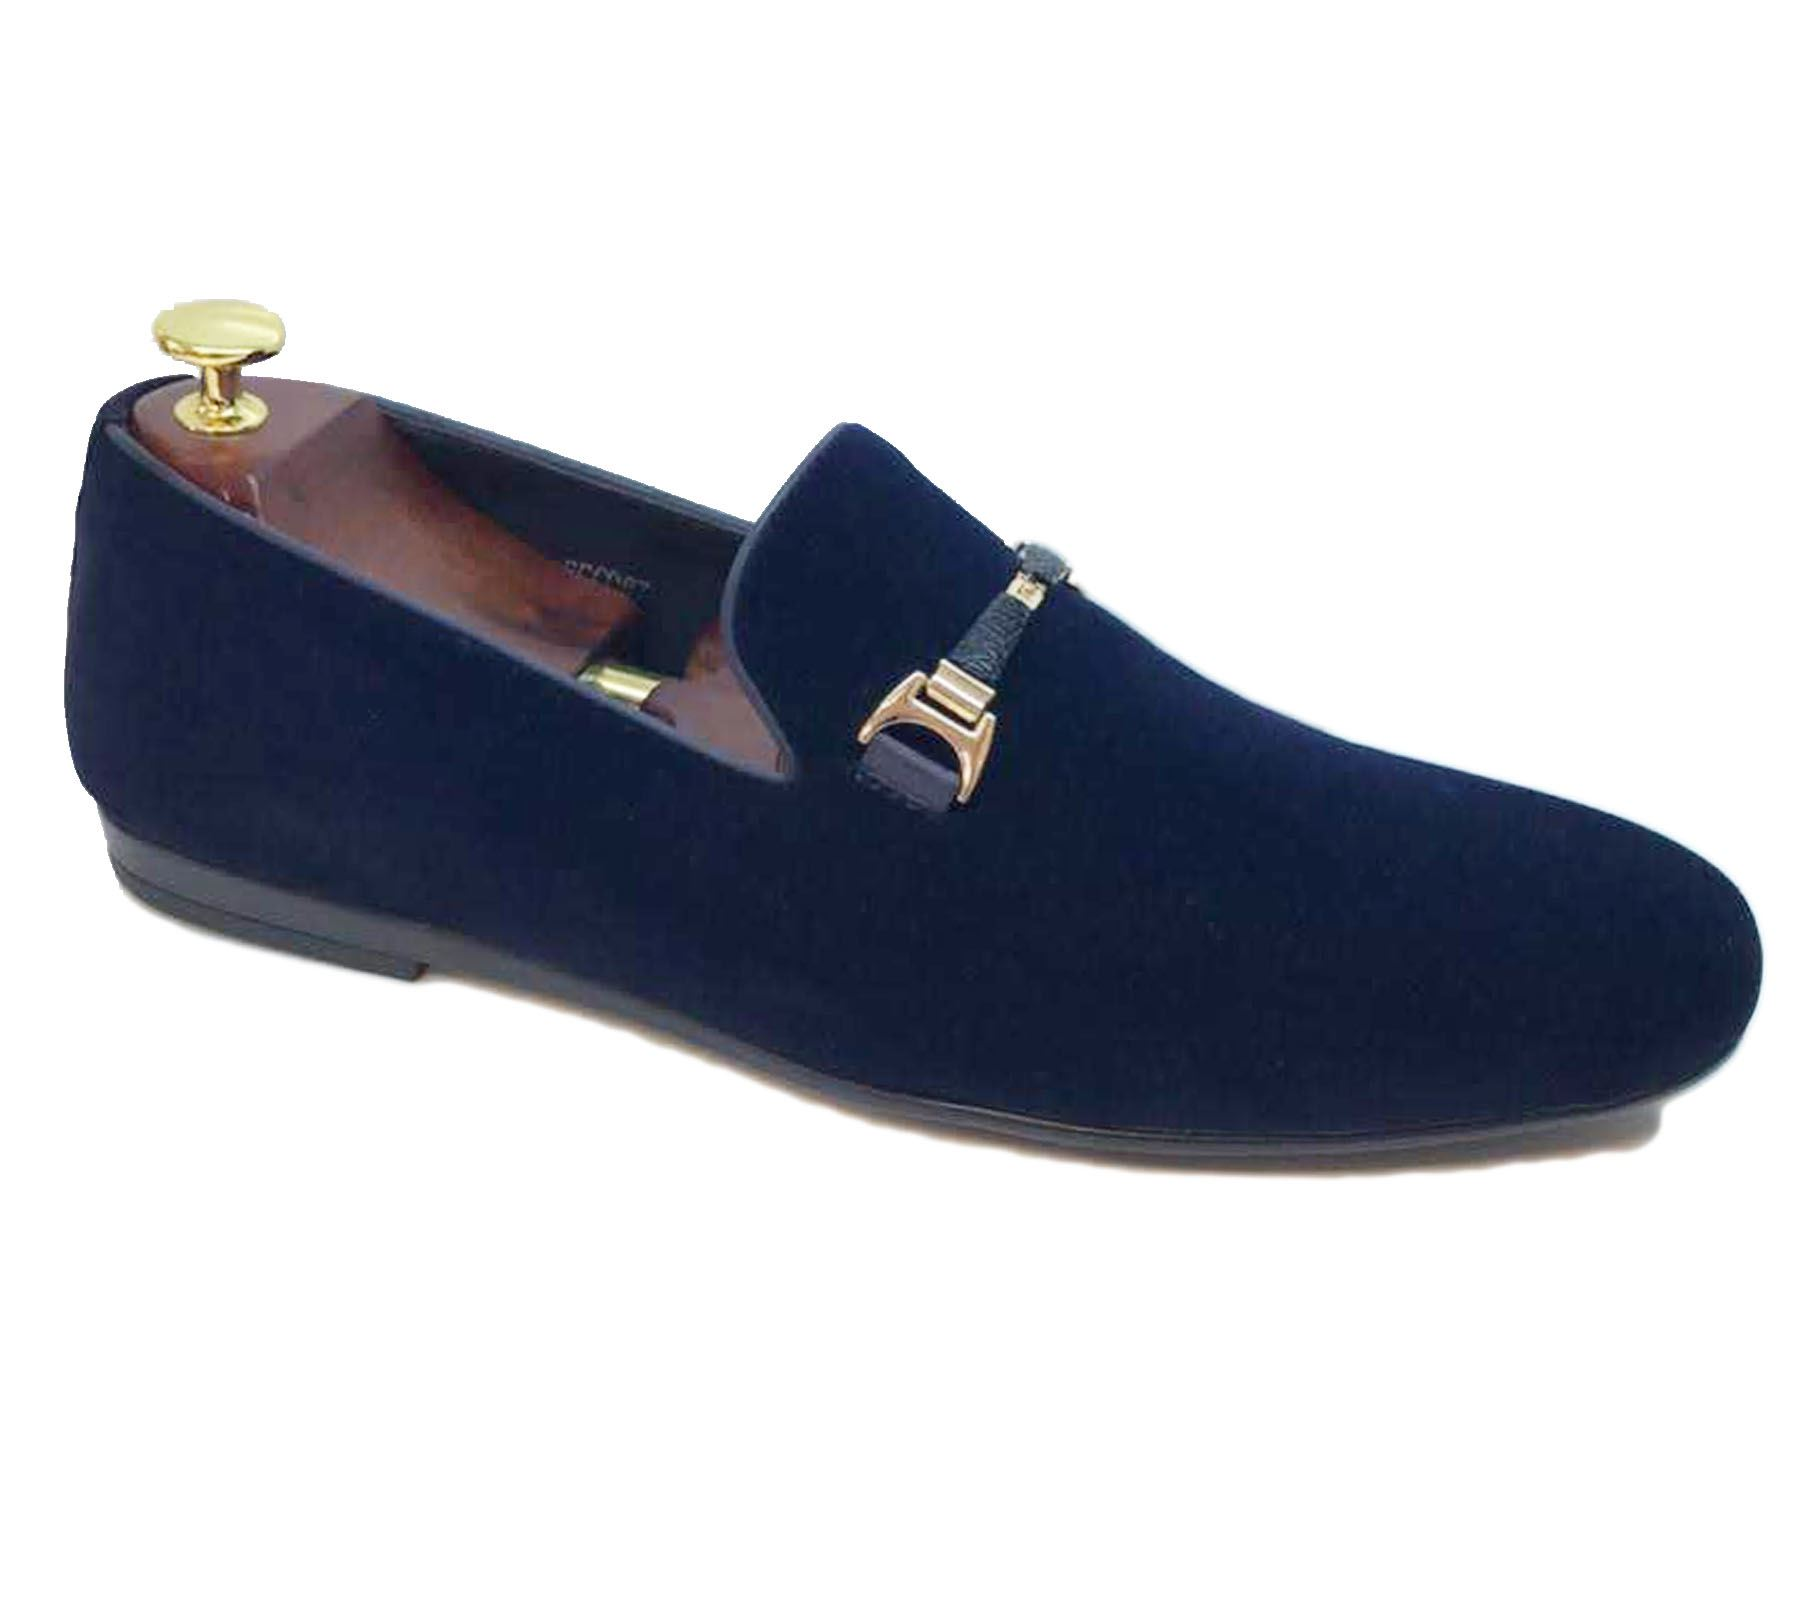 Mens-Loafers-Mocassin-Boat-Deck-Shoes-Flat-Slip-On-Driving-Casual-Smart-Pumps thumbnail 19